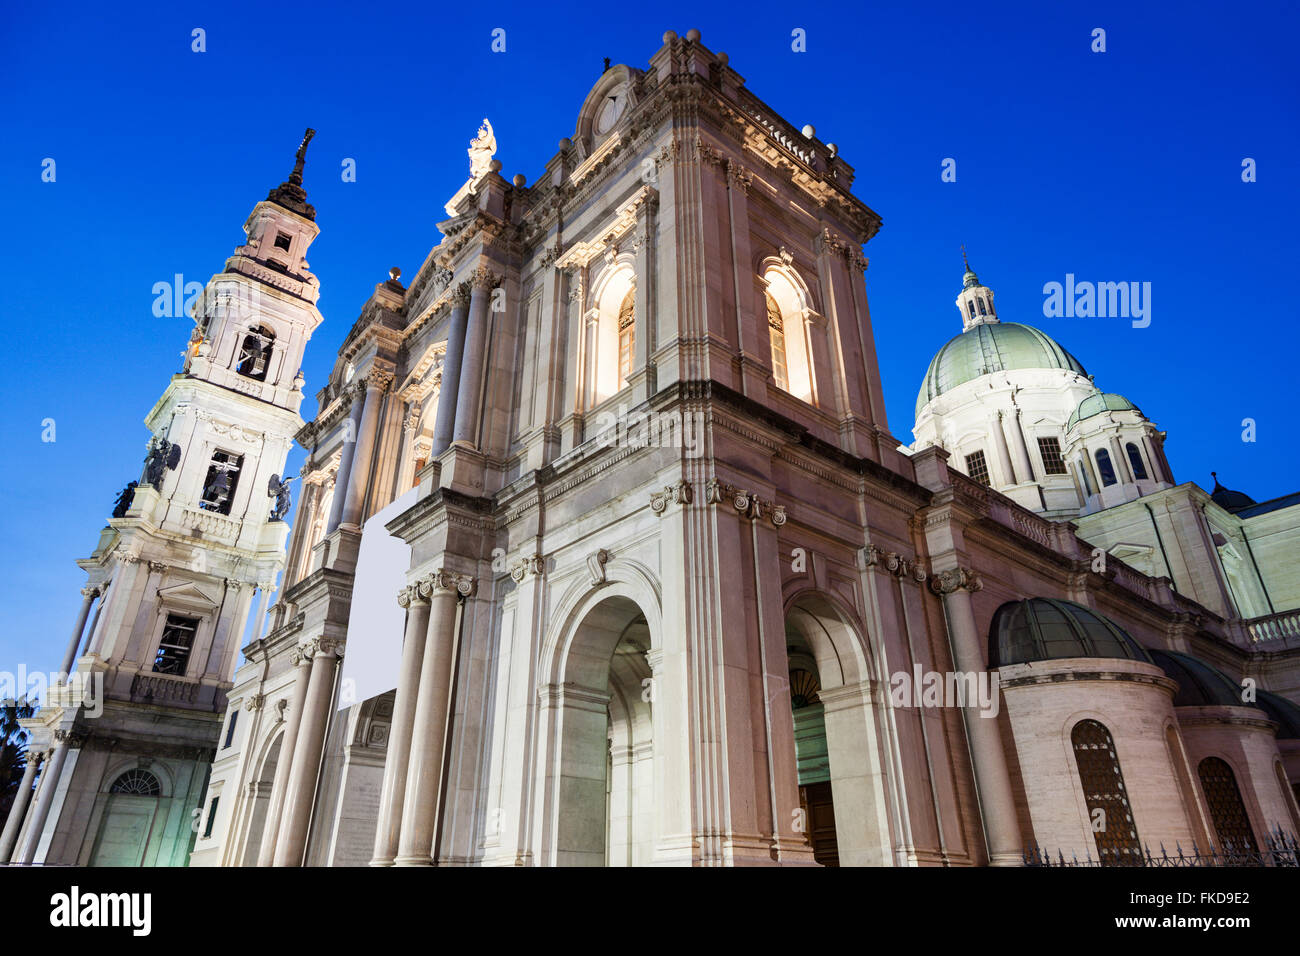 Pontifical Shrine of Blessed Virgin of Rosary at night - Stock Image